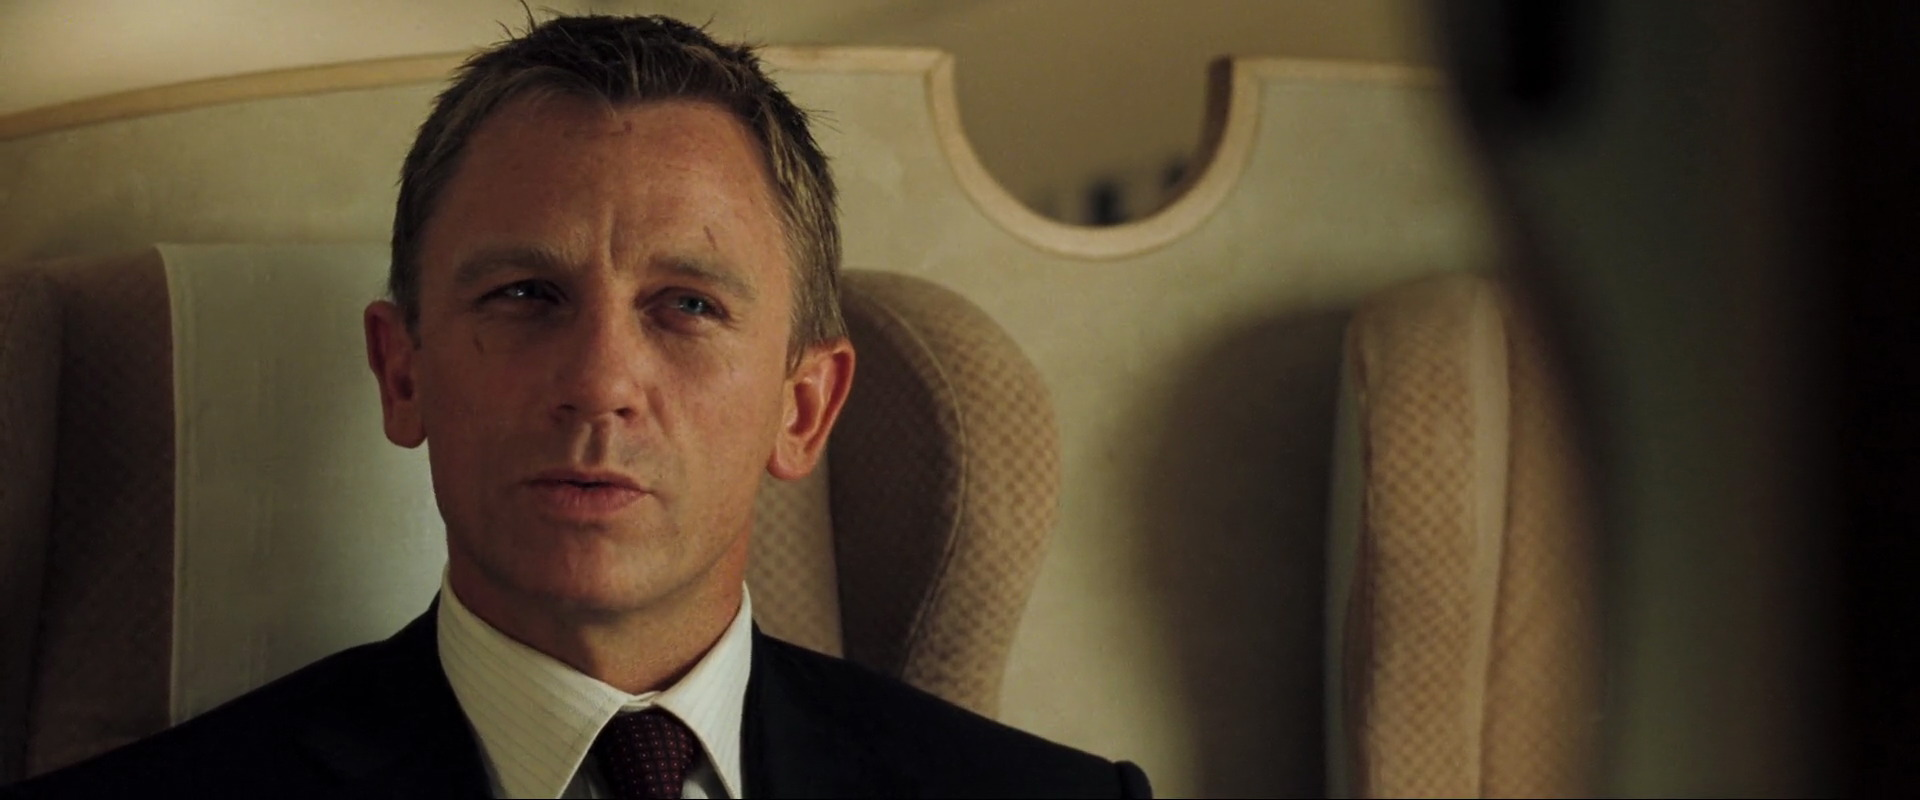 https://i0.wp.com/caps.pictures/200/6-casino-royale/full/casino-royale-movie-screencaps.com-7074.jpg?strip=all